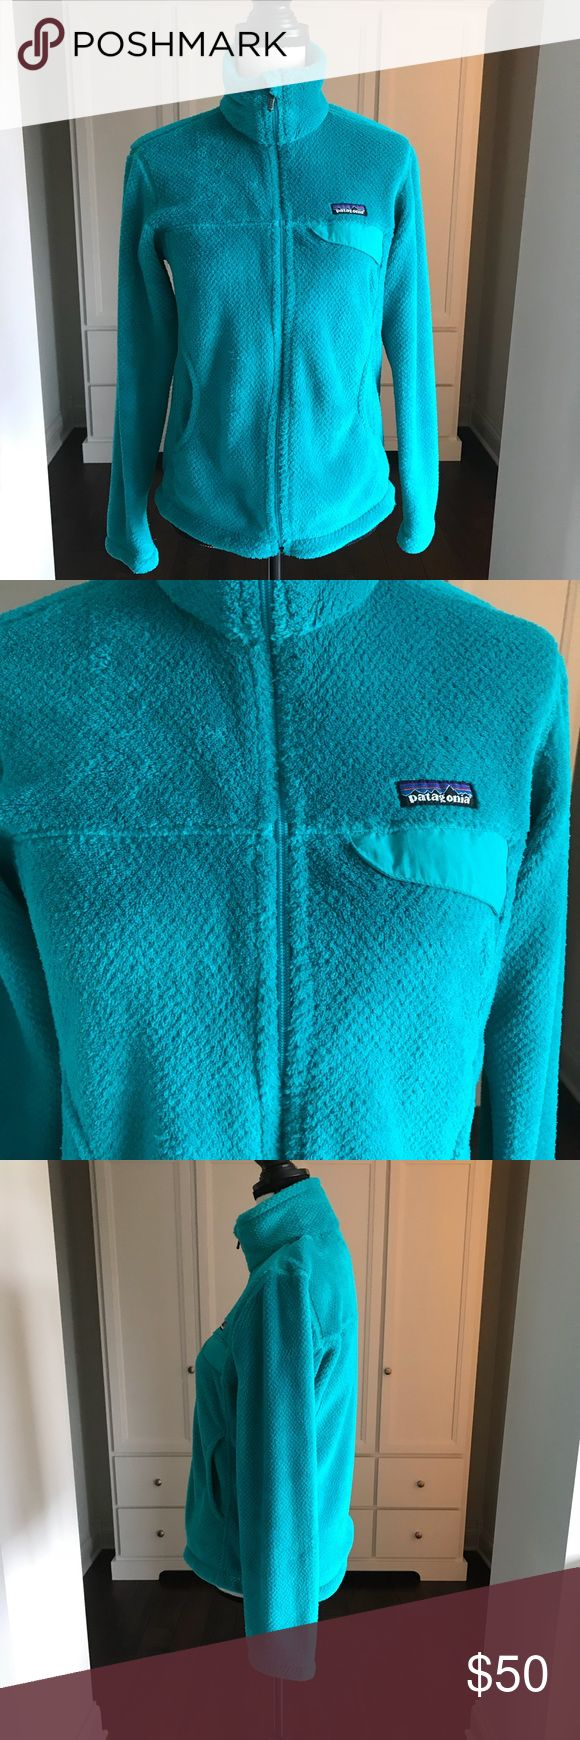 Patagonia ReTool Fleece Full Zip New no tags  Excellent condition  Deep teal color Patagonia Jackets & Coats